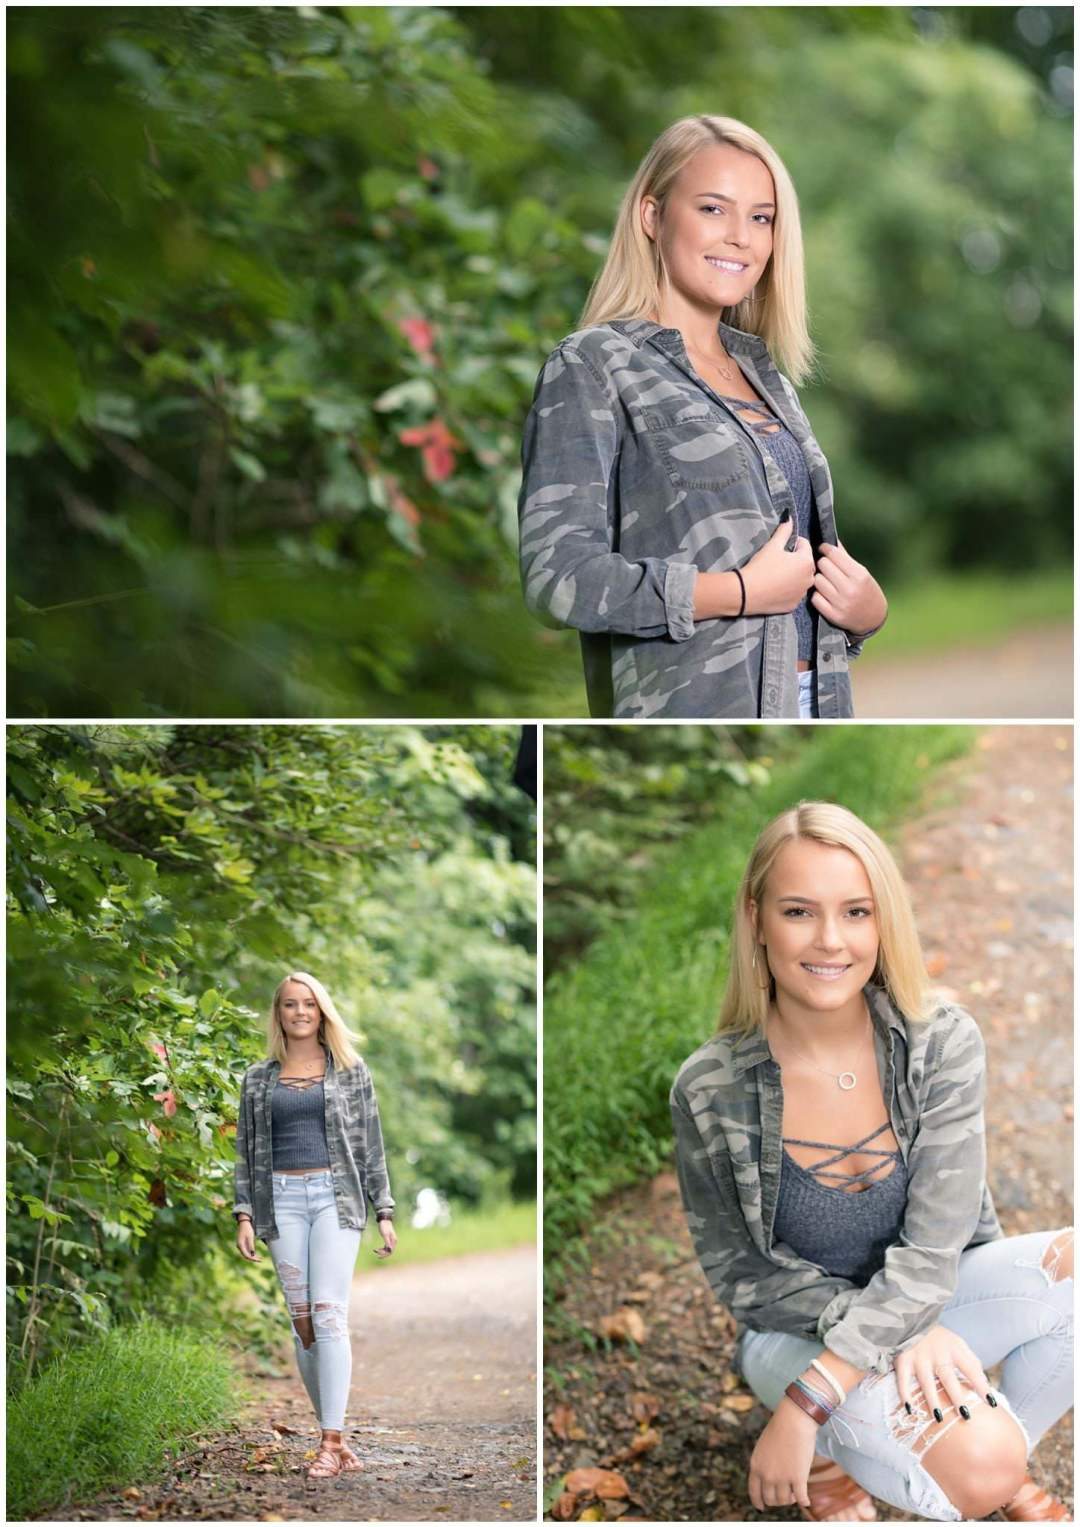 Outdoor senior portrait in the woods